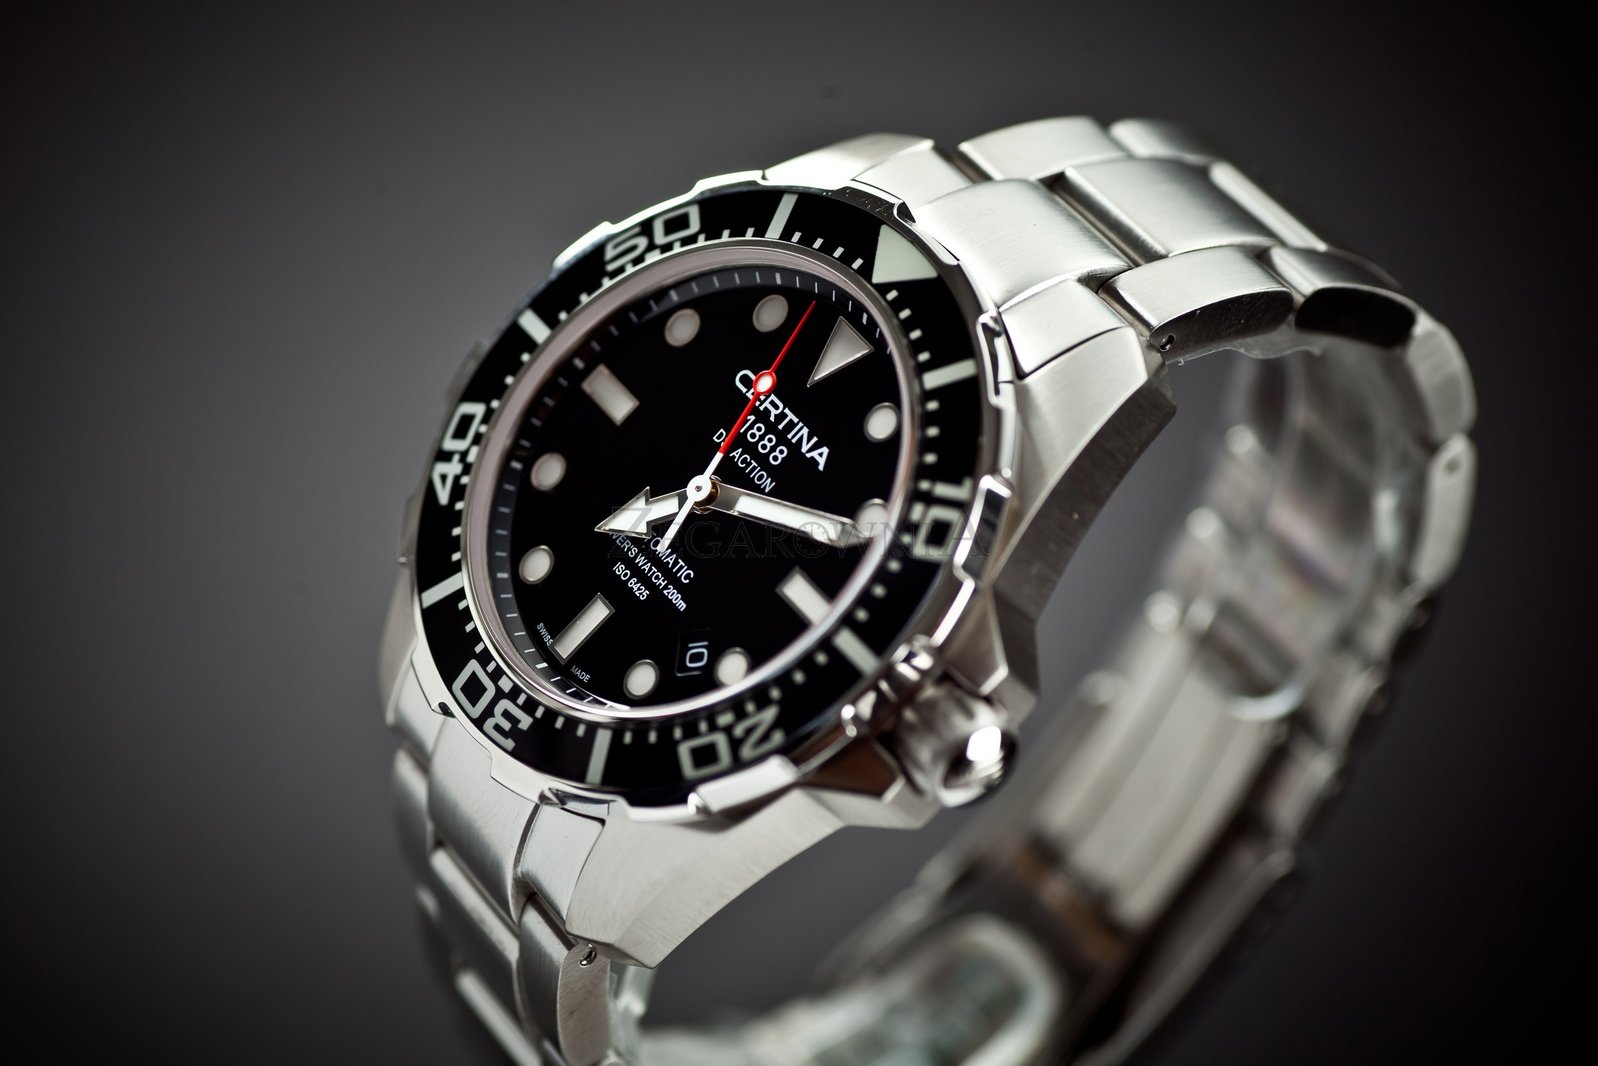 certina-ds-action-diver-automatic-c013-407-11-051-00.jpg